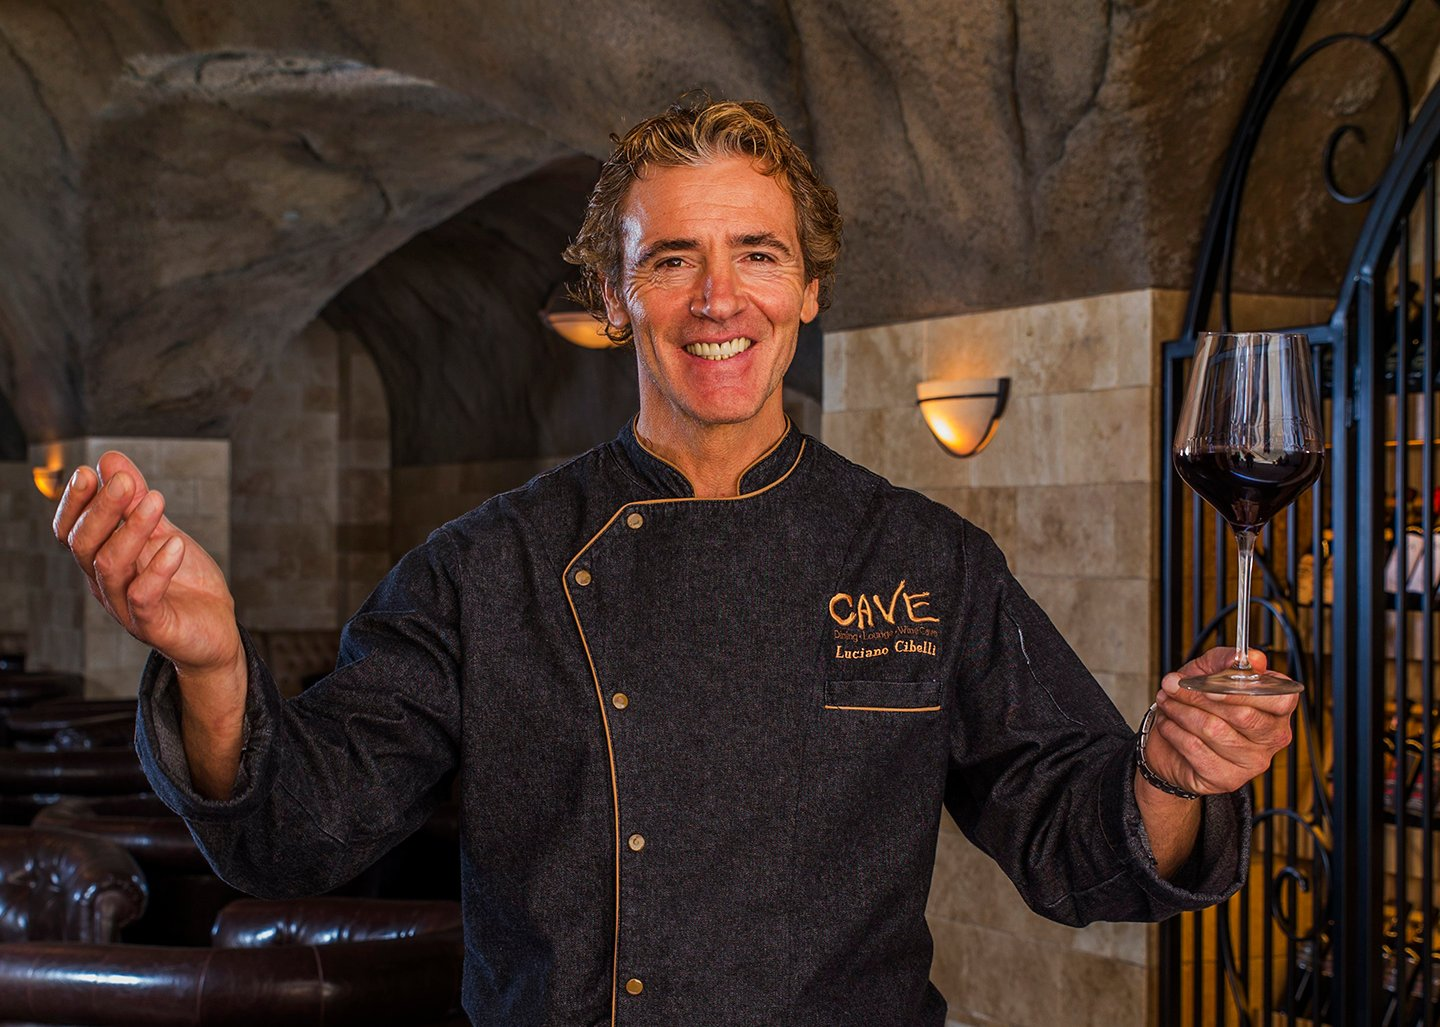 Executive Chef Luciano Cibelli welcomes all to Pala Casino's new underground wine CAVE for lounge dining, fine wine and entertainment. Photo courtesy Pala Casino Spa and Resort